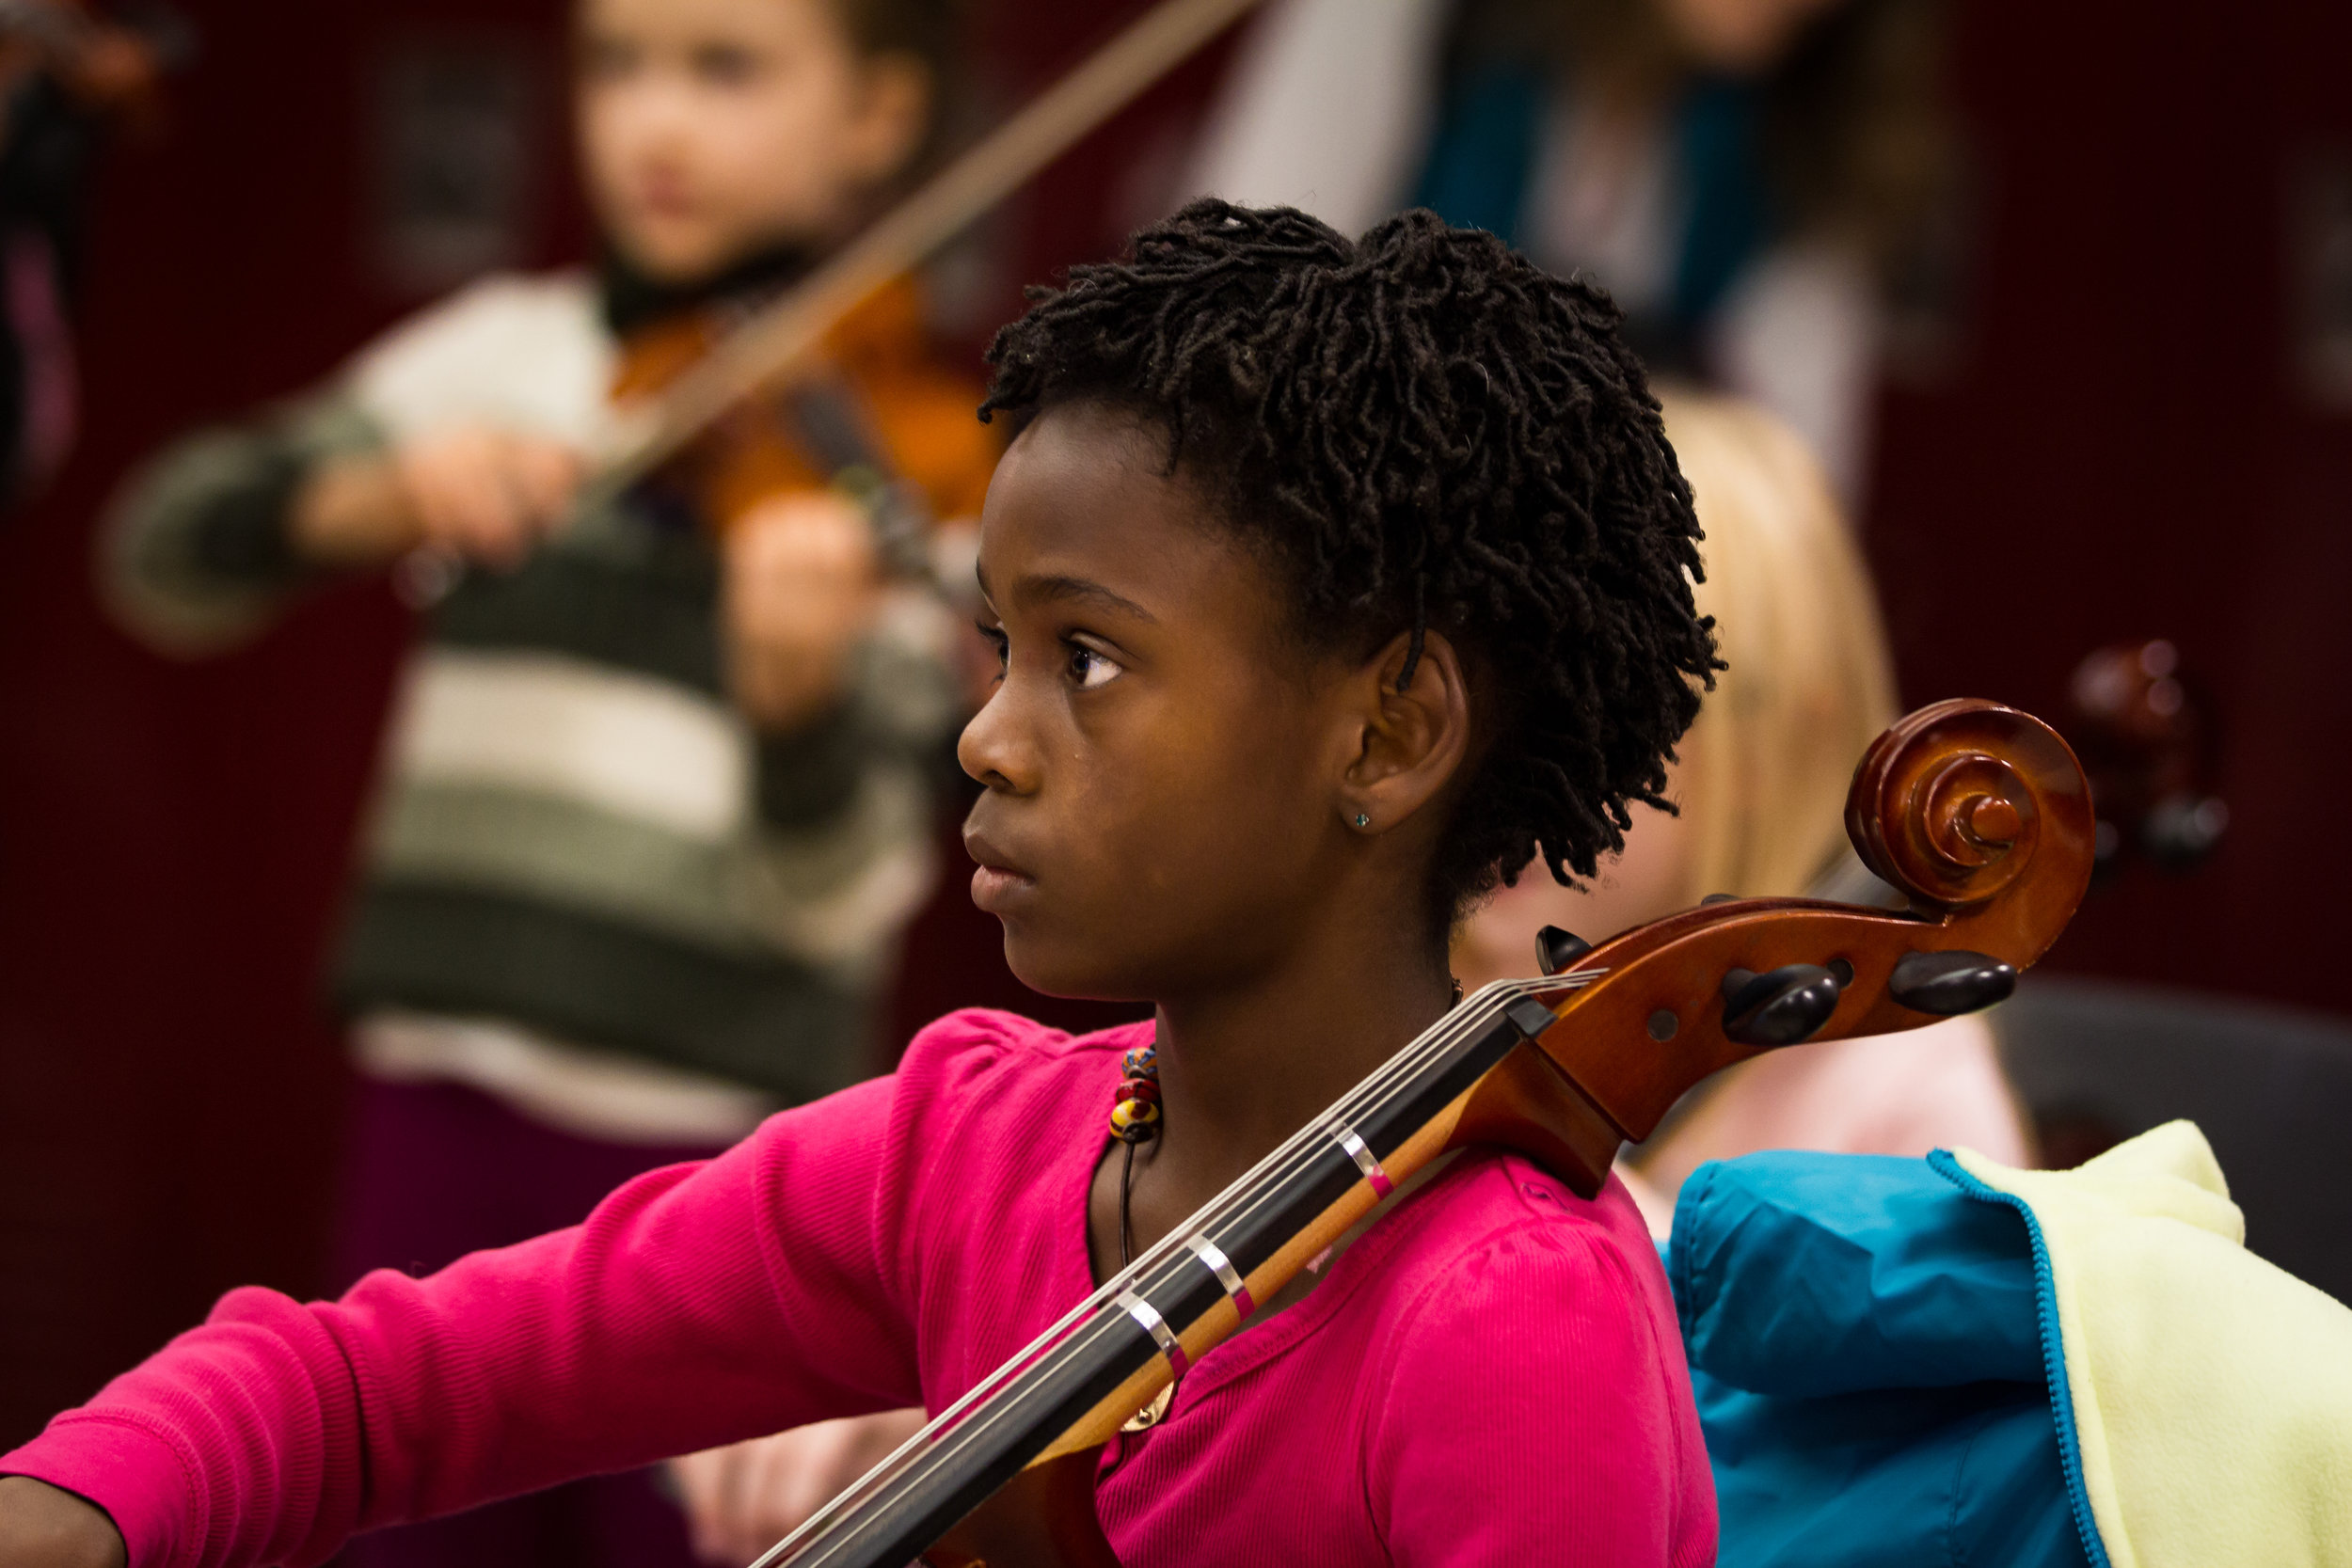 It's all for the children   Ypsilanti Youth Orchestra    Learn More   Contribute